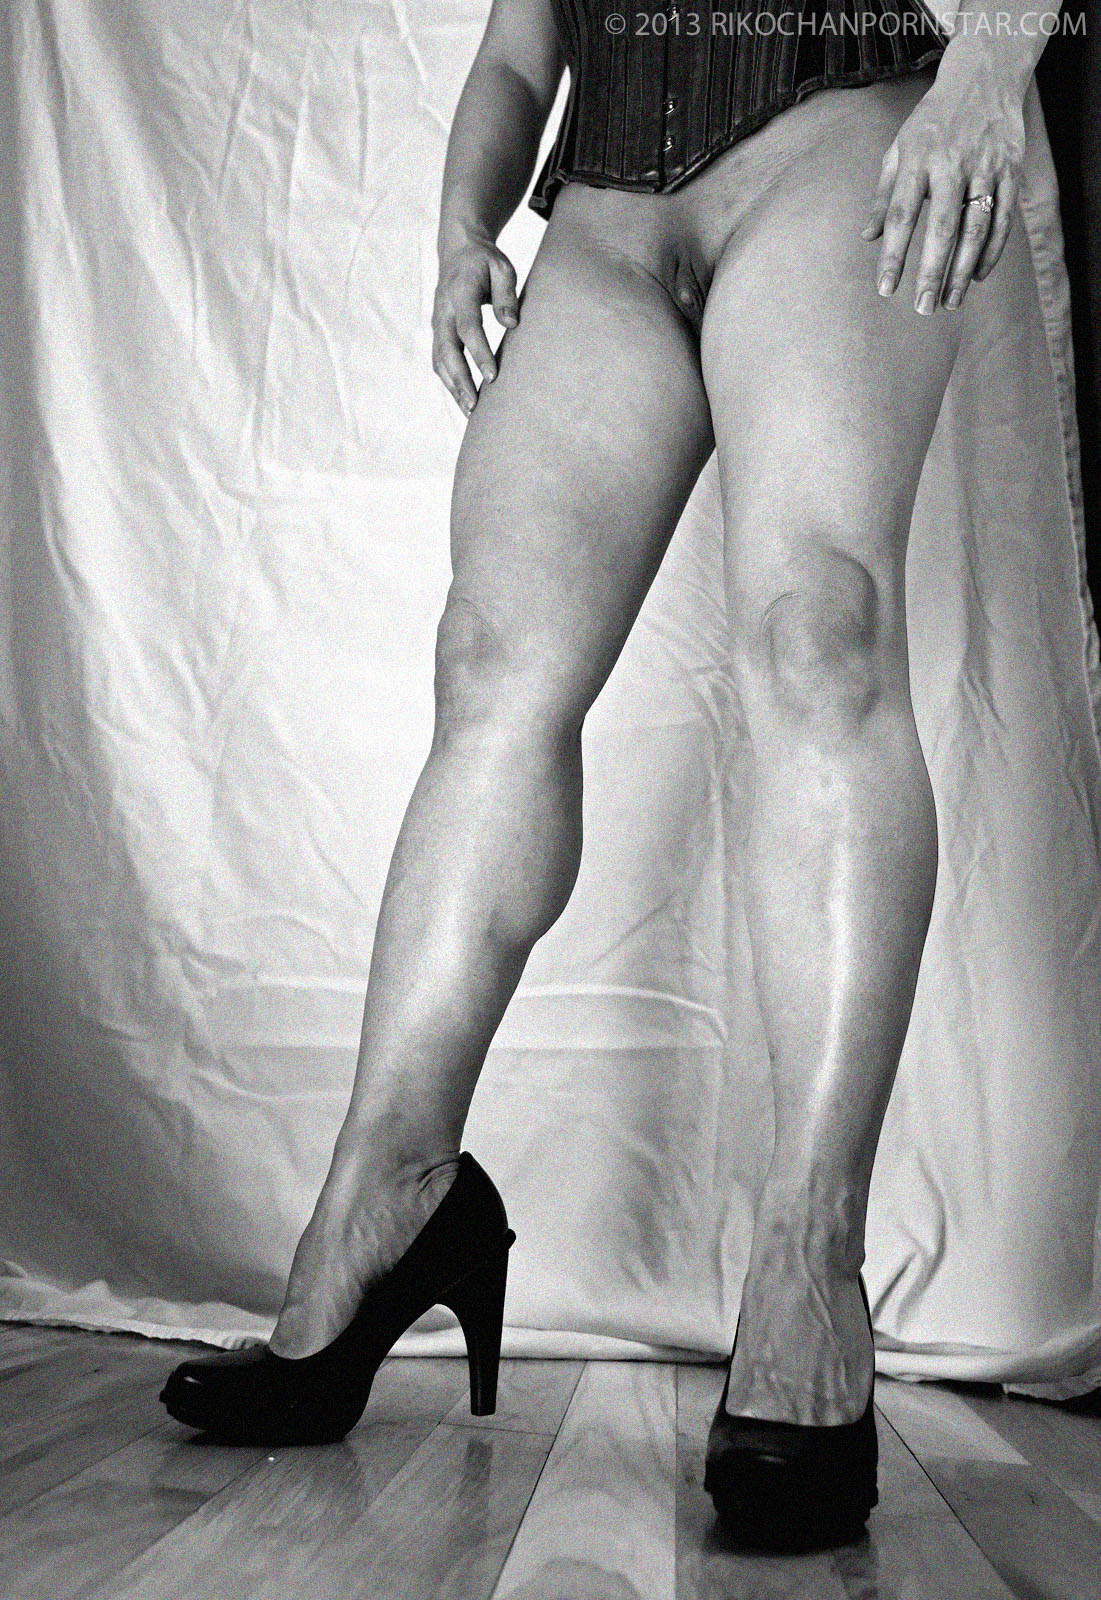 Rikochan Strong Calves in B&W